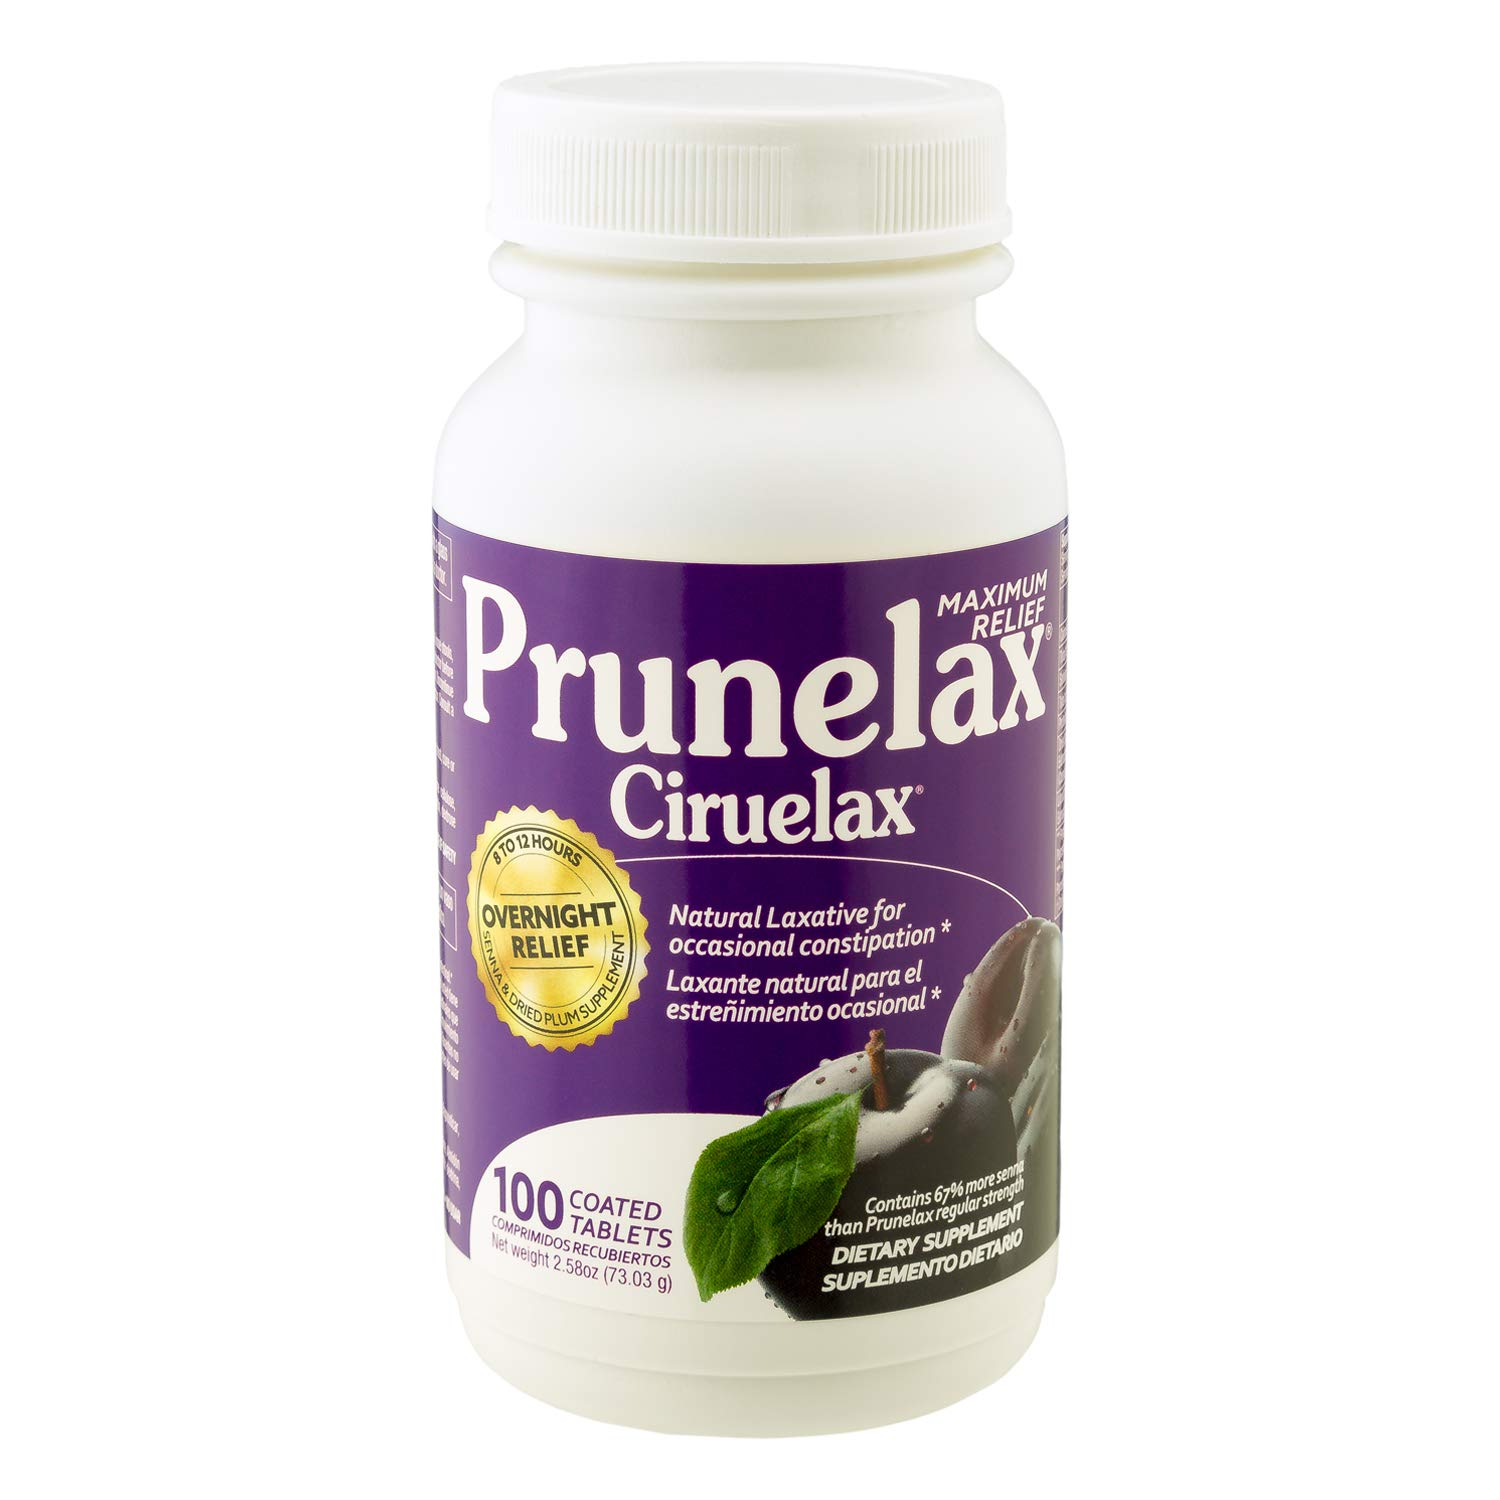 Prunelax Ciruelax Natural Laxative Maximum Relief Tablets, 100Count by Prunelax